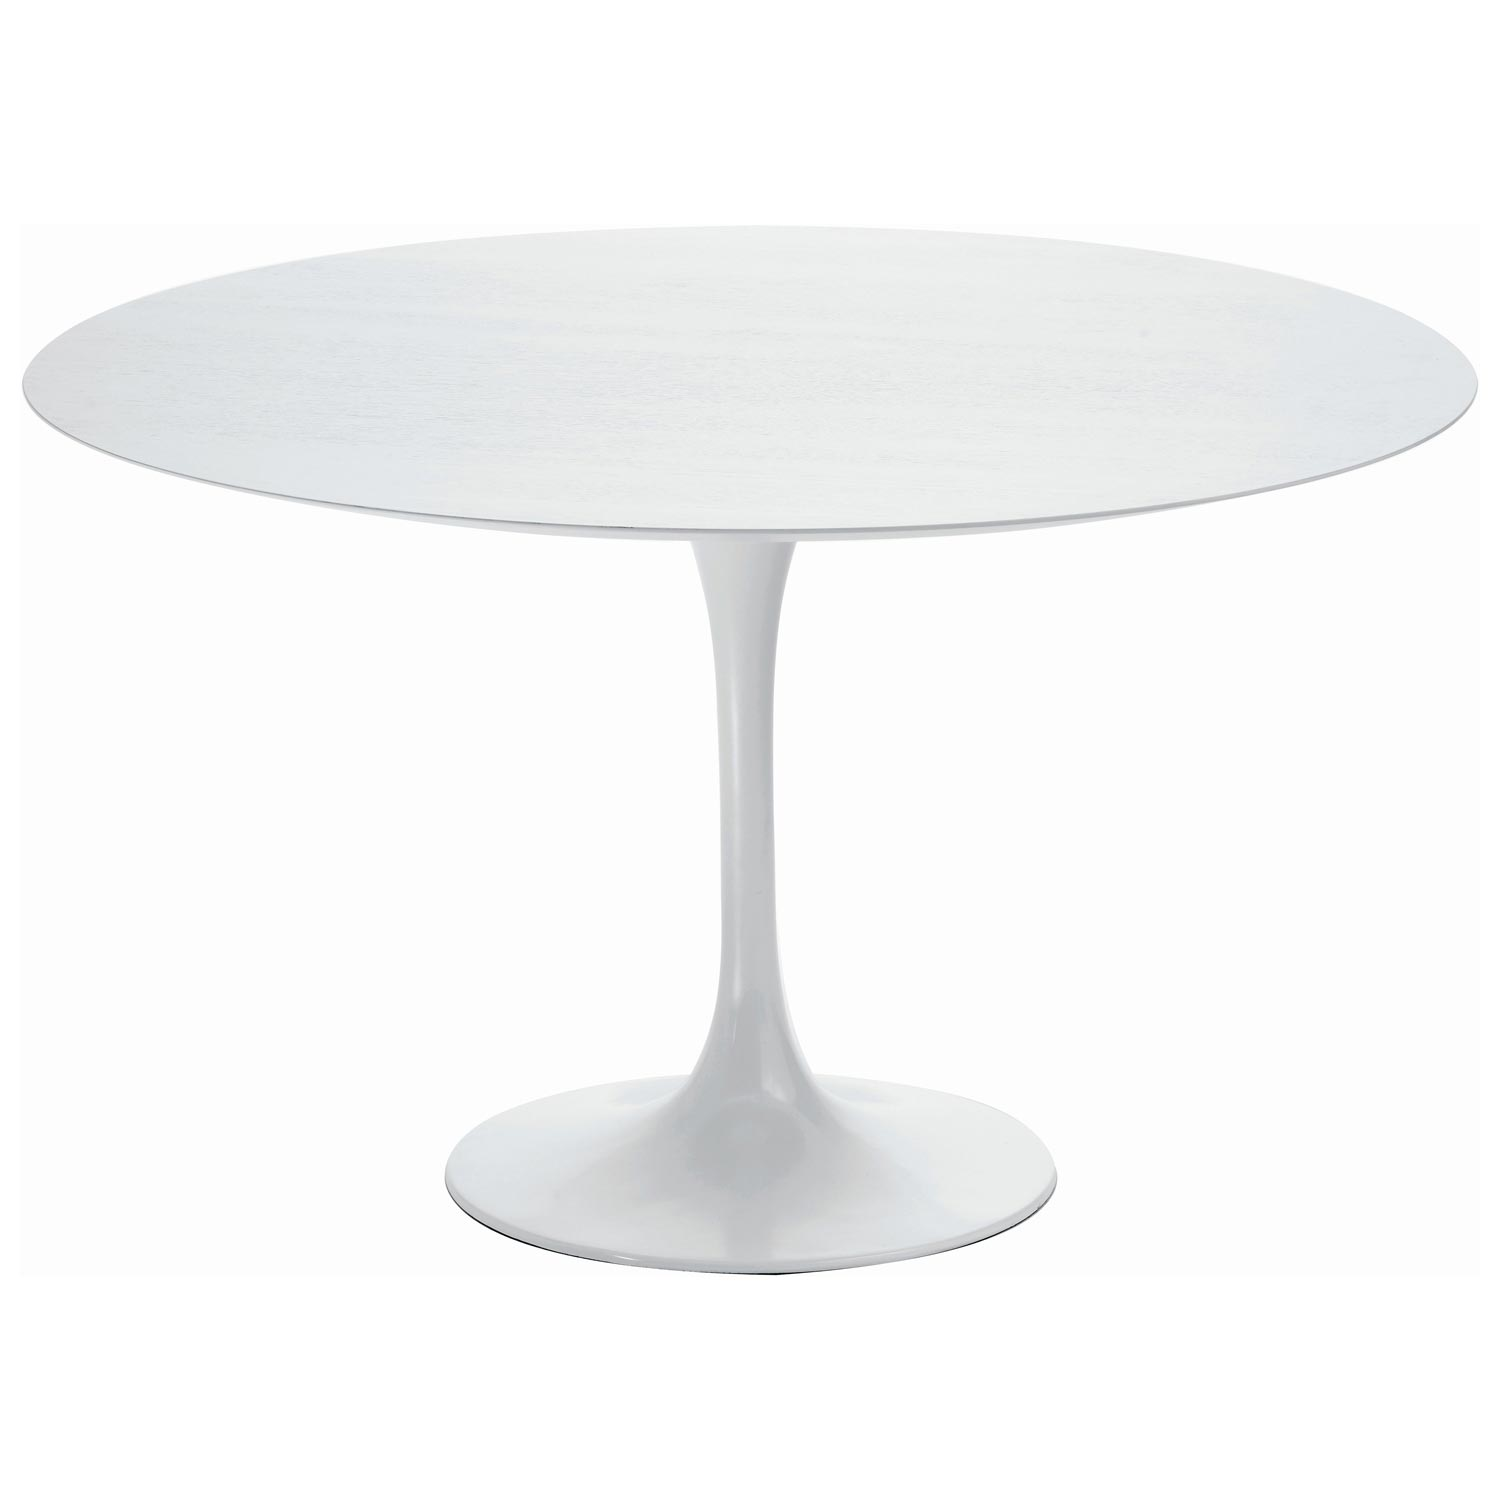 Cal Round Dining Table - Saarinen Inspired - NVO-HGEM1XX-DT-CAL